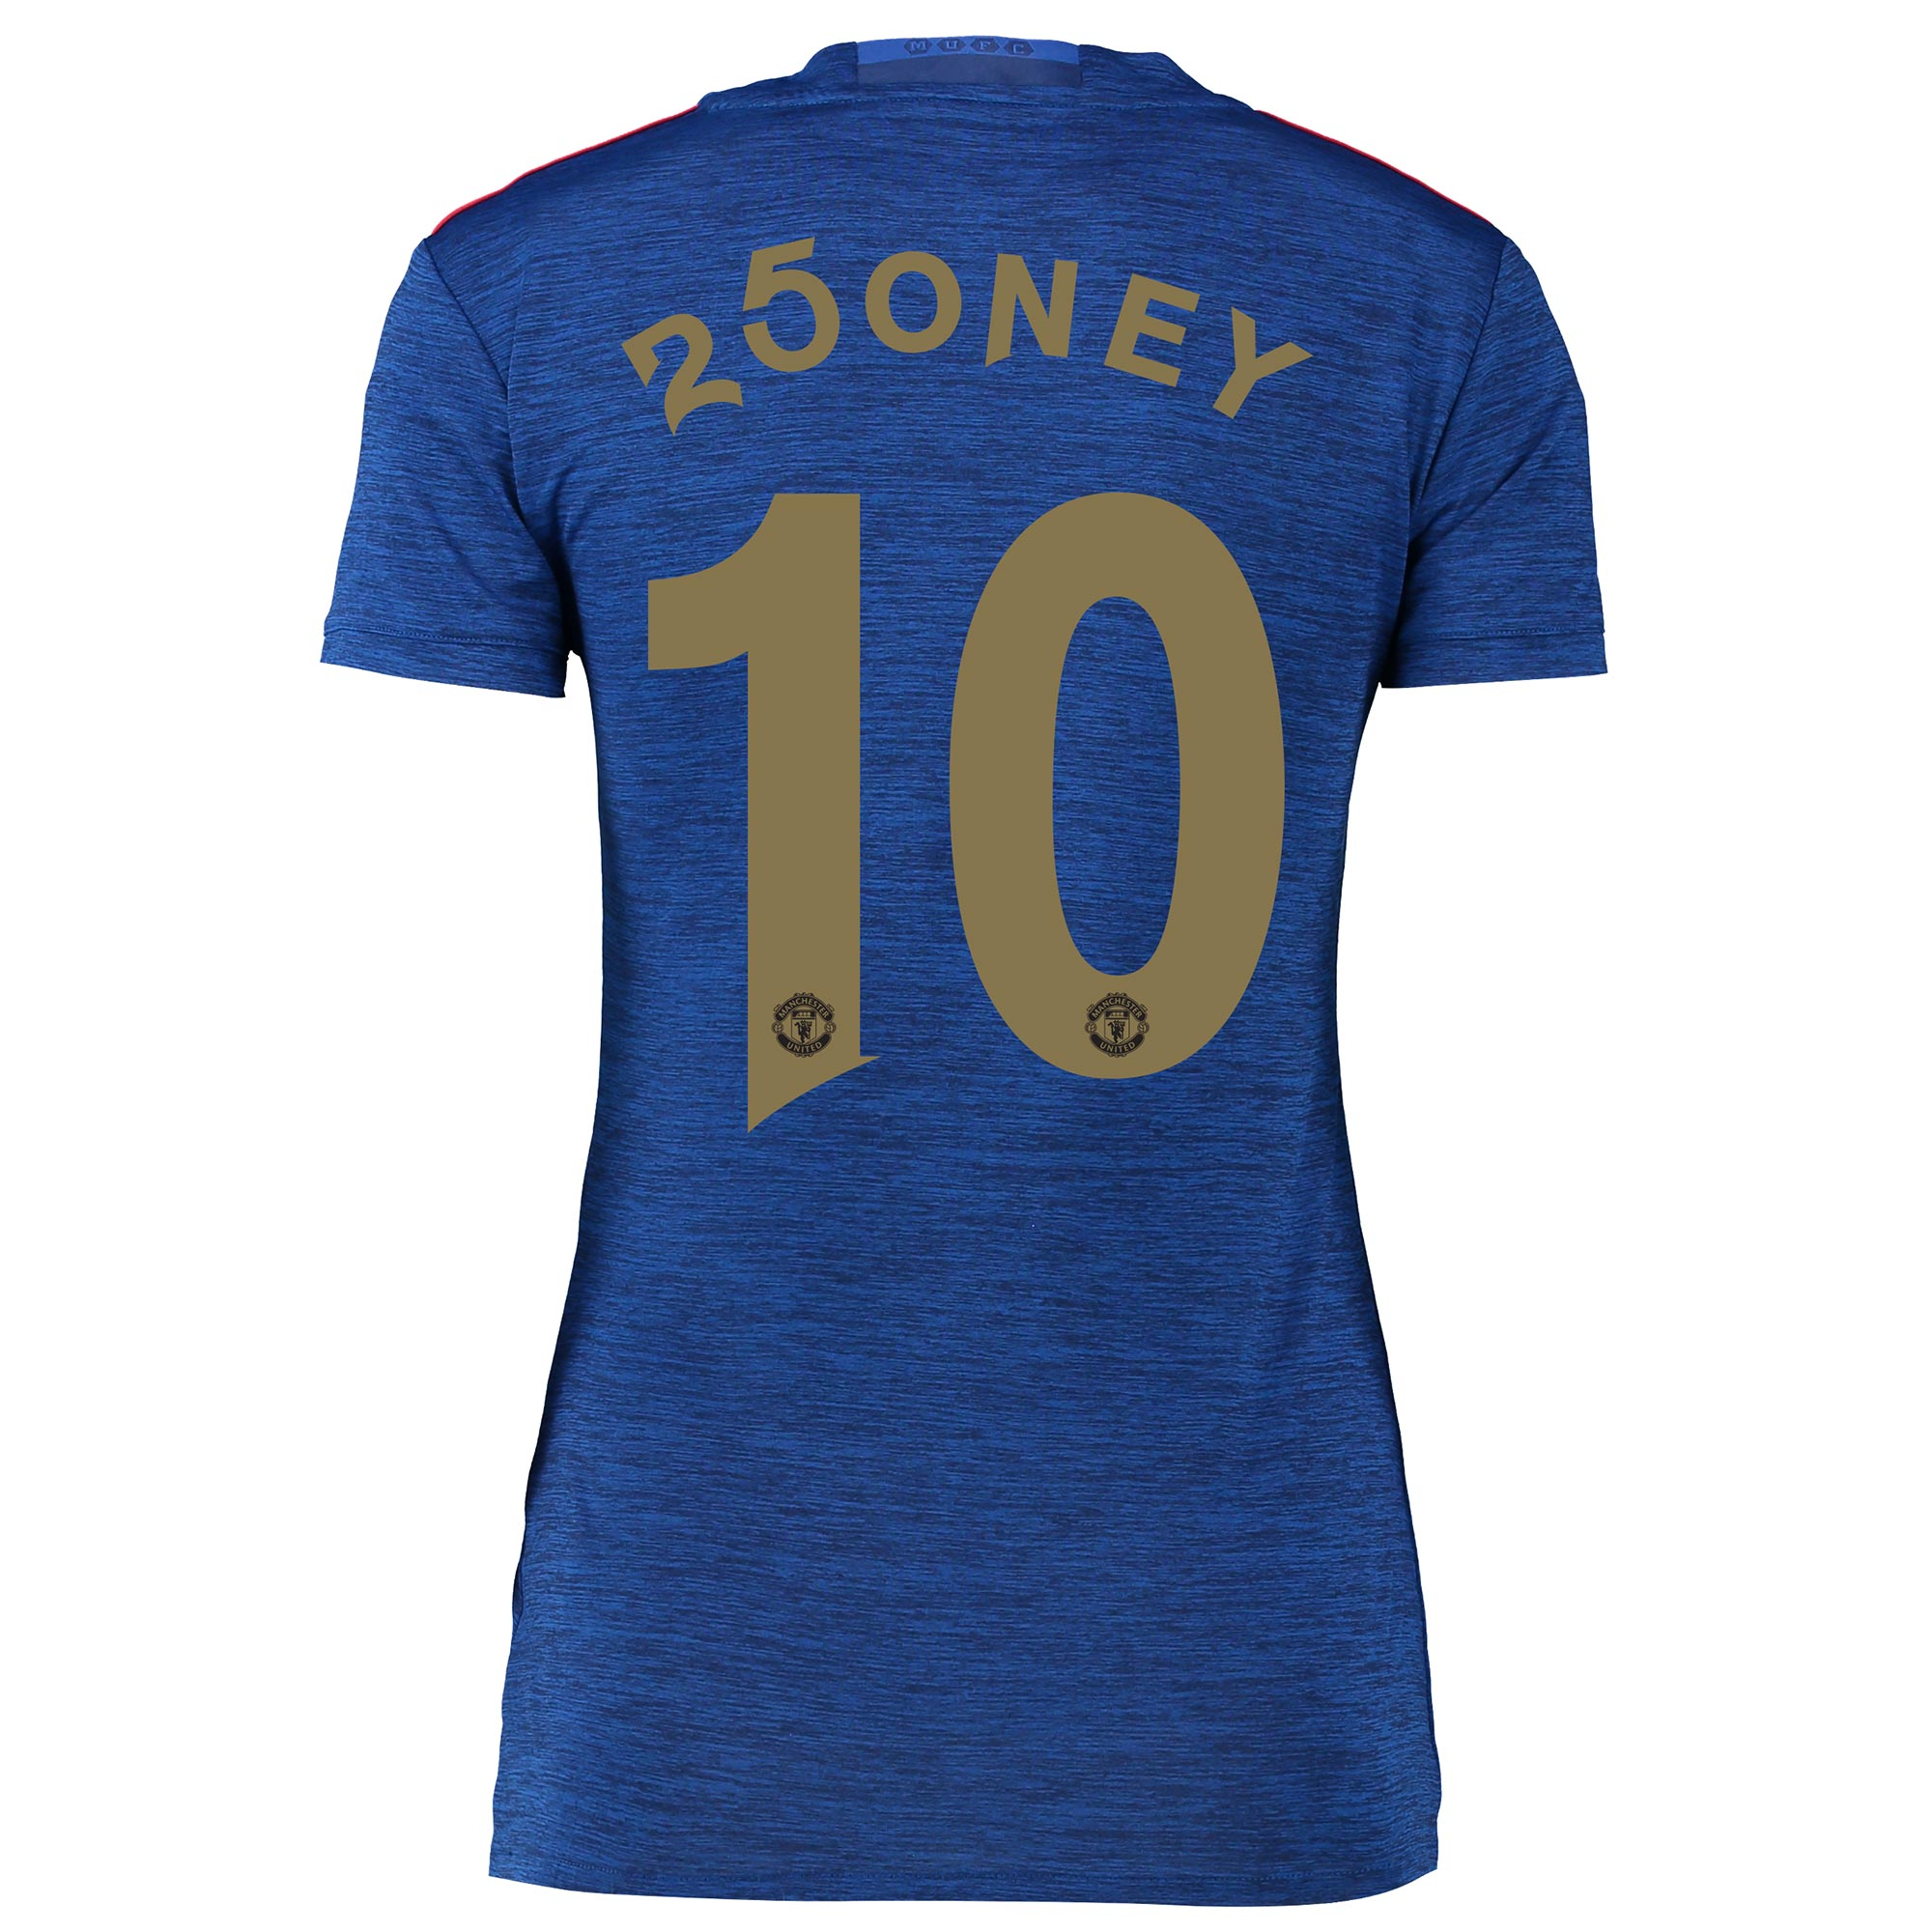 Manchester United Away Shirt 2016-17 - Womens with 250ney 10 printing